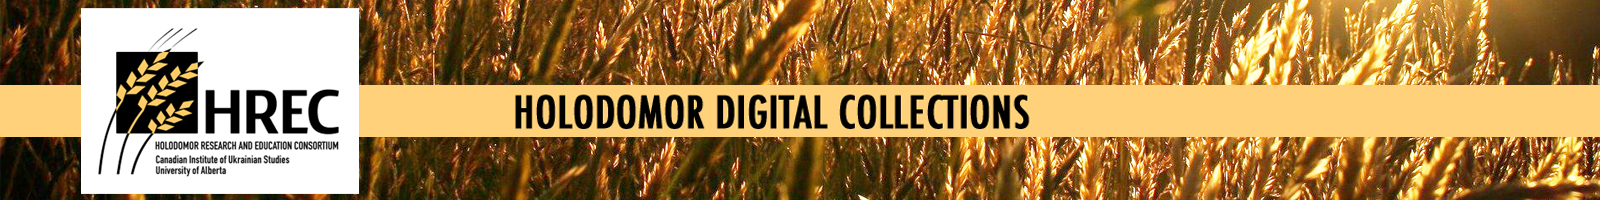 Holodomor Digital Collections